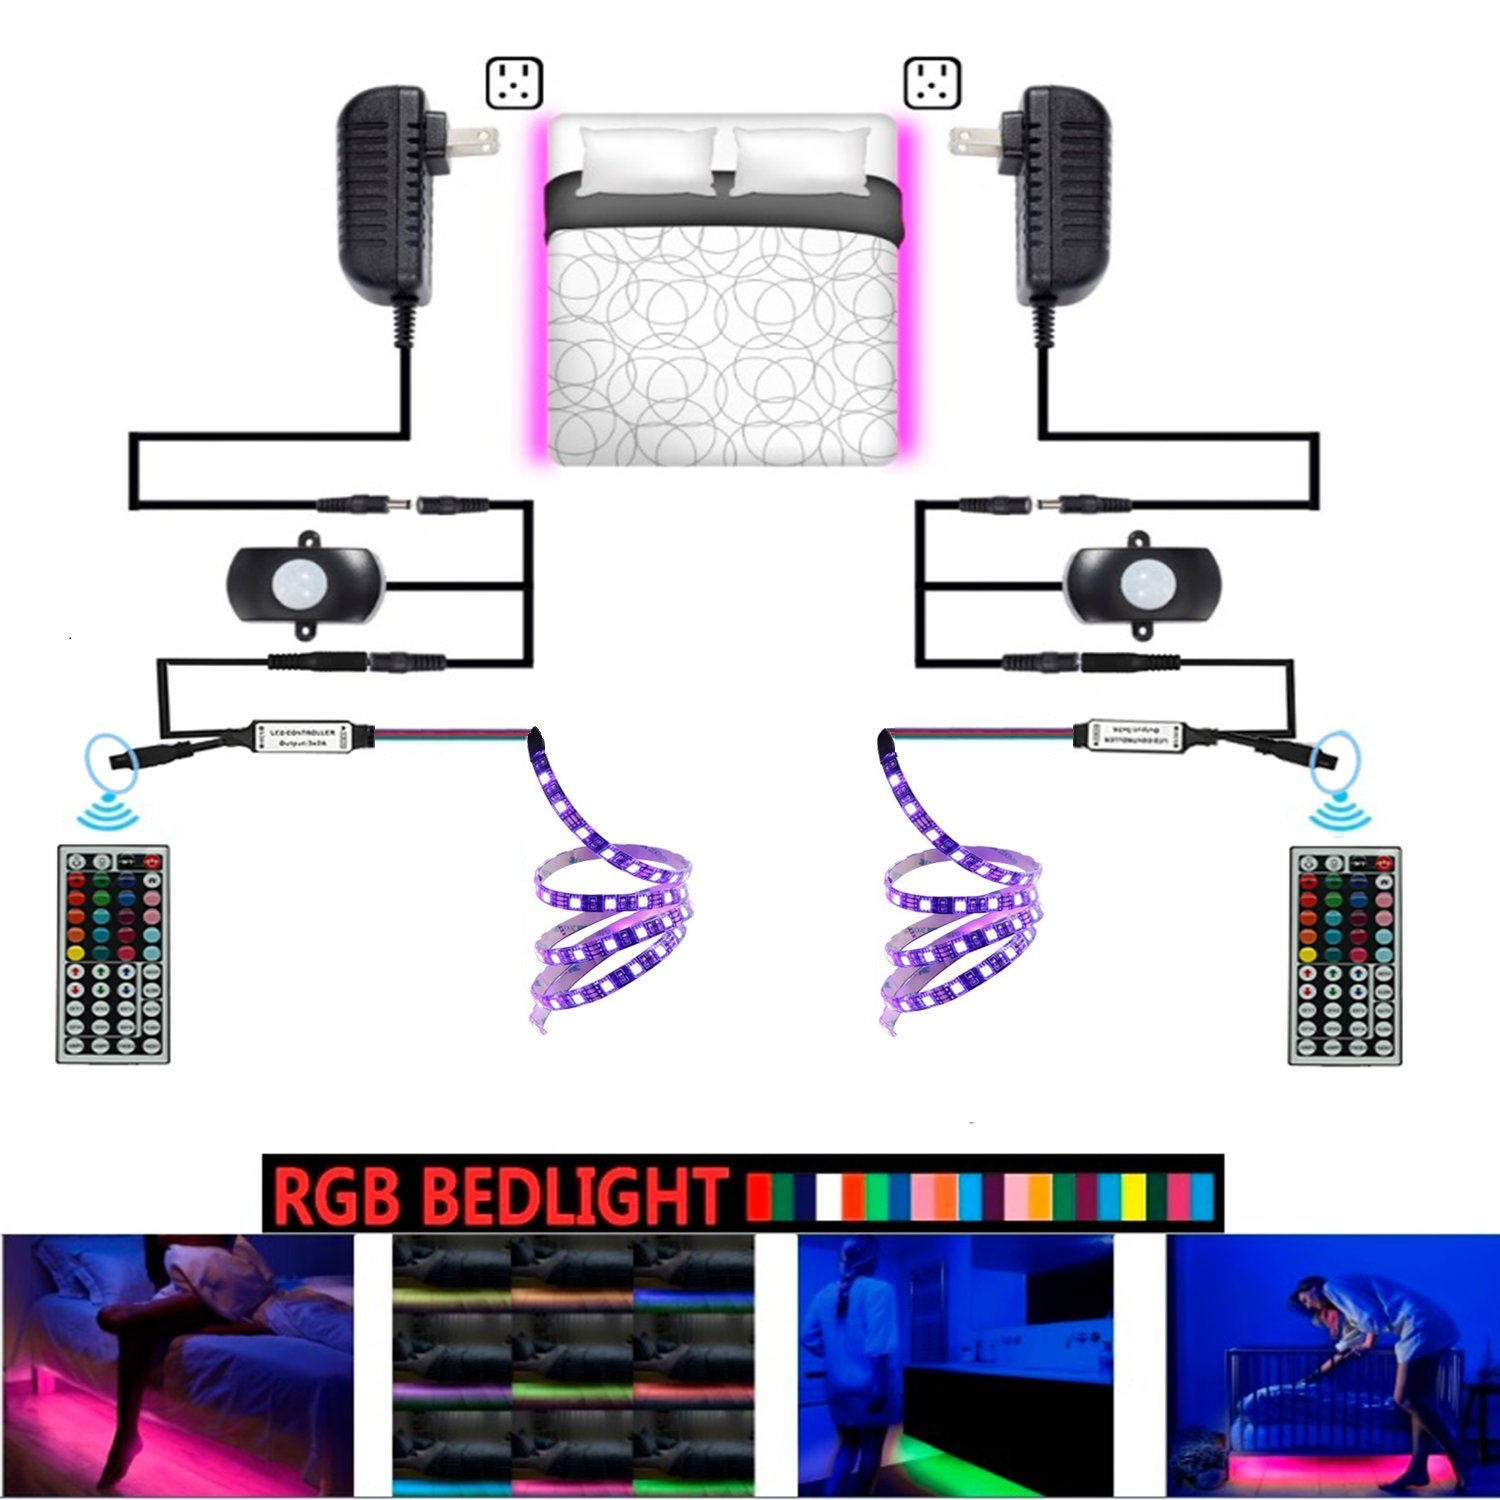 LEHOU Under Bed Light Motion Activated Illumination RGB Color Include Warm Color Automatic Staircase Lighting LED Strip Sensor Night Light Bathroom,Wardrobe,Kitchen - 1.5m/4.9ft x 2 by LEHOU (Image #2)